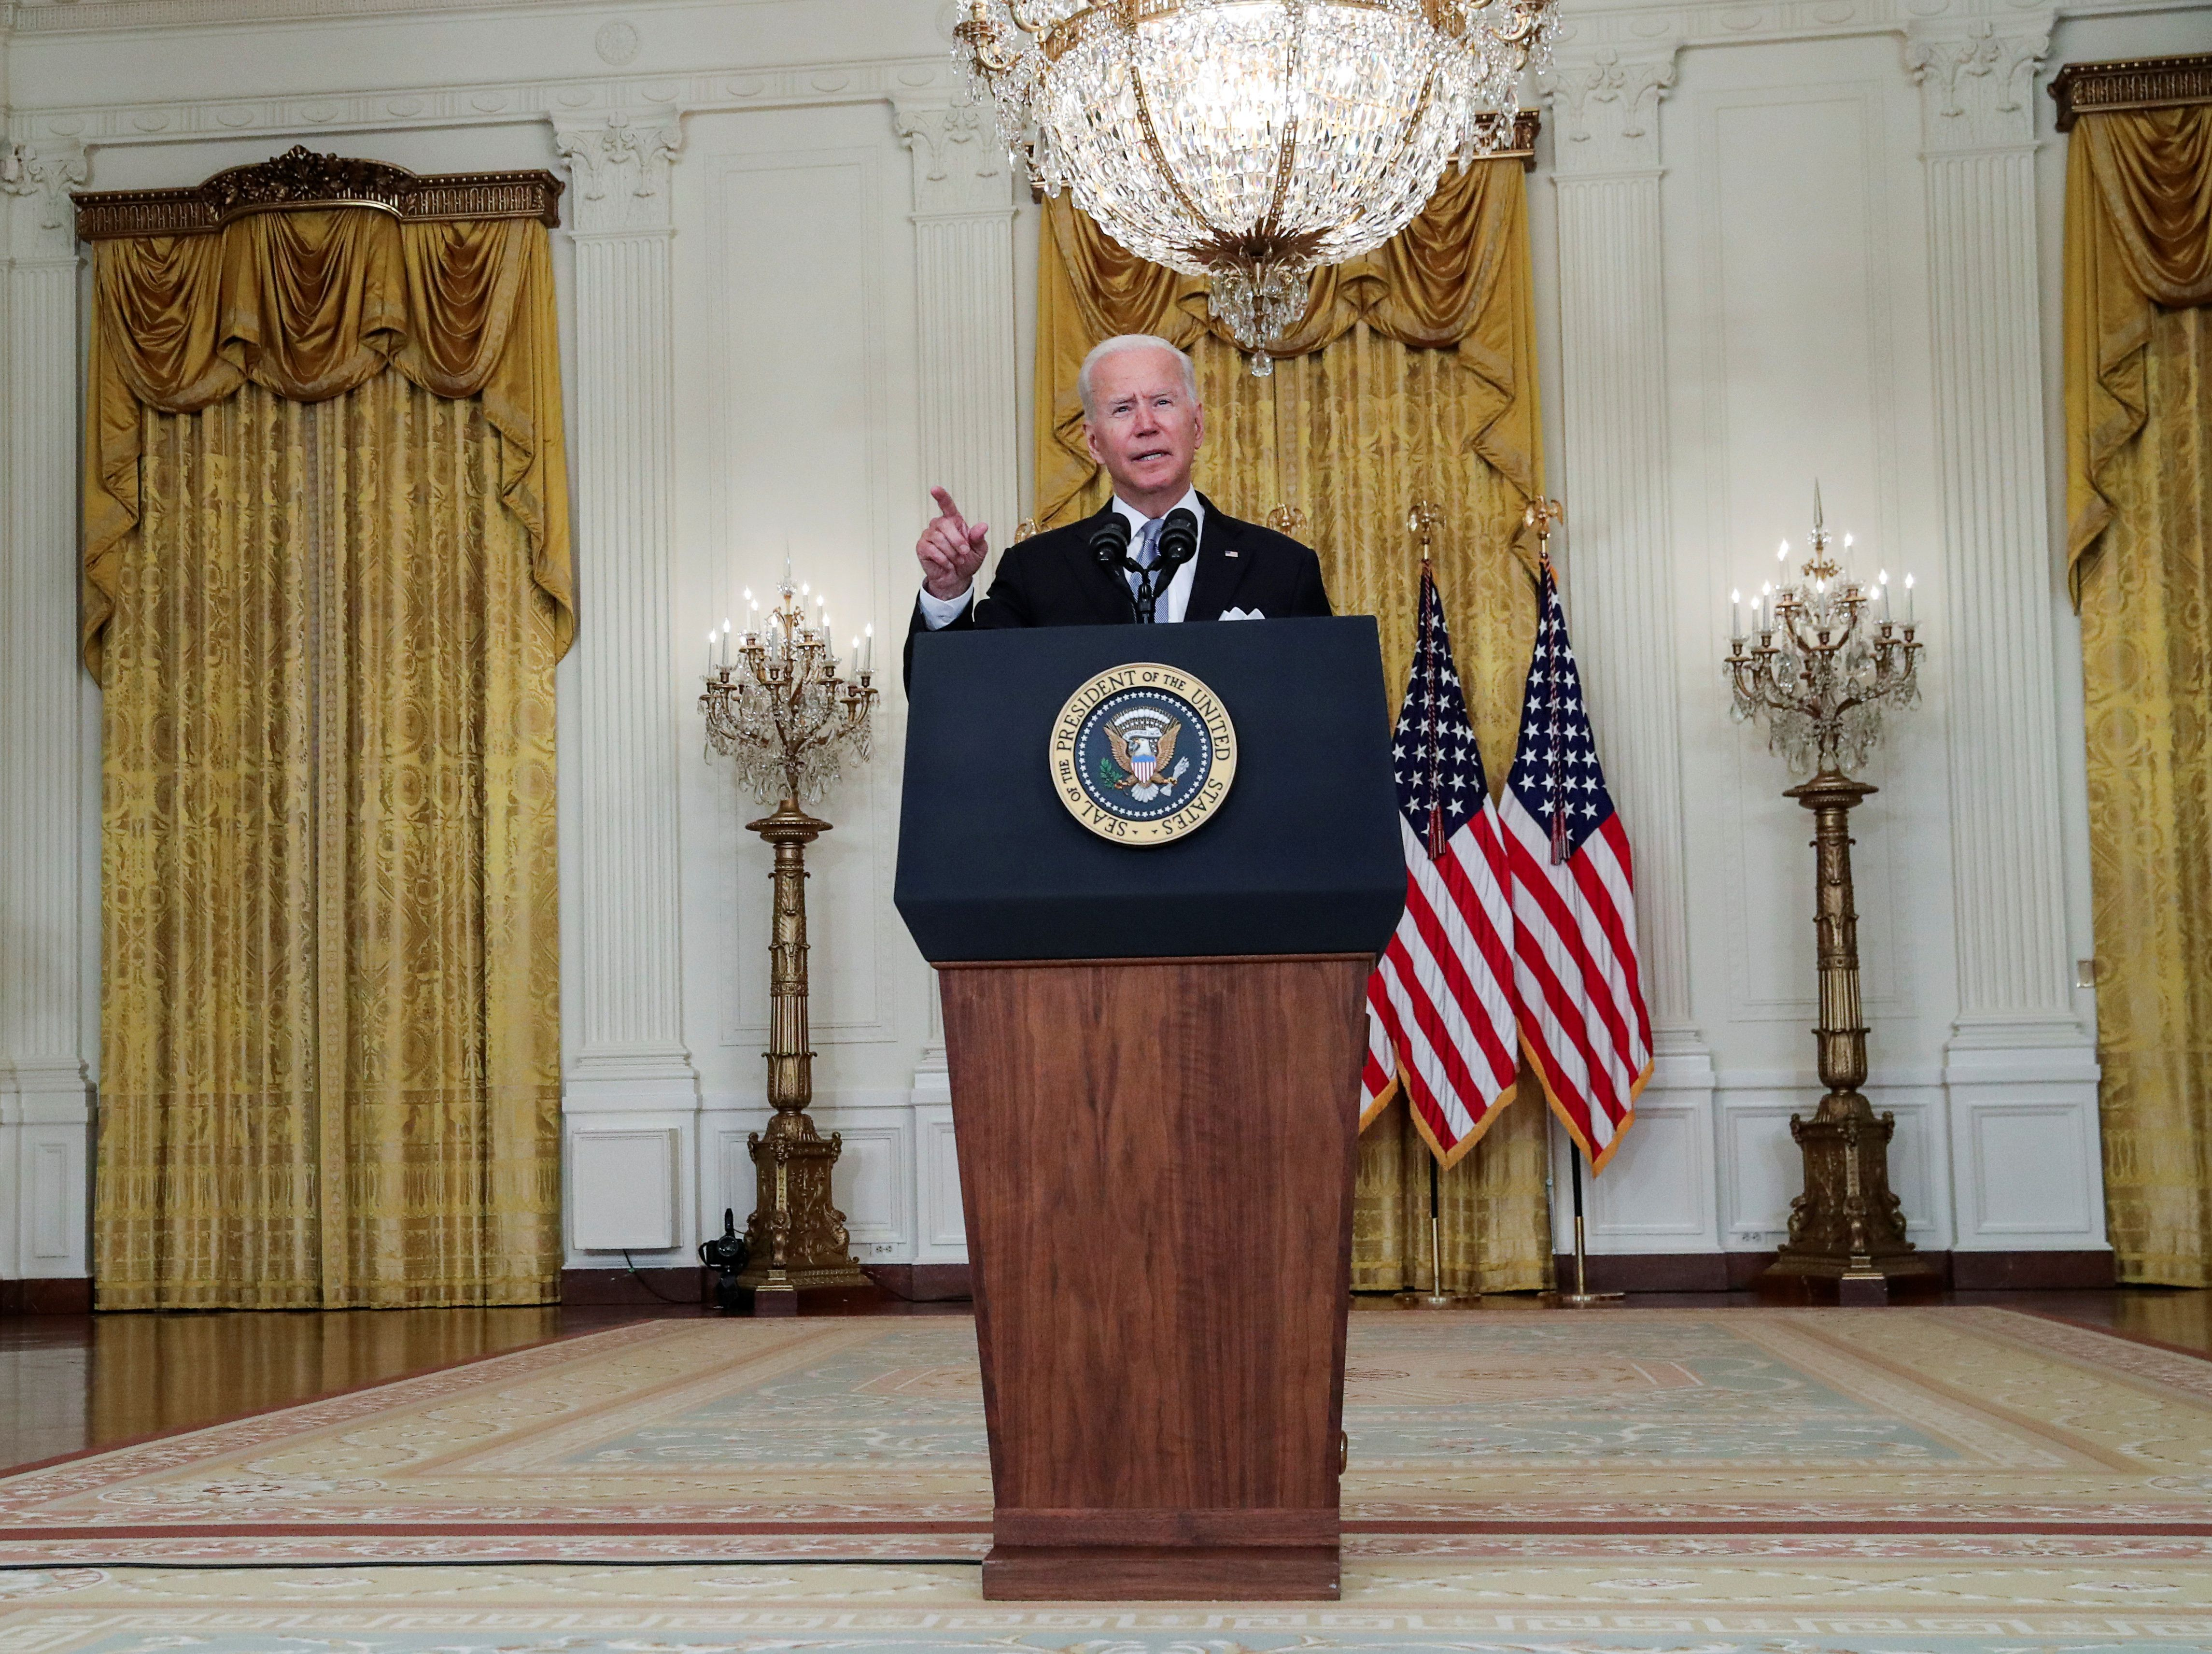 Joe Biden during his speech at the White House (Photo: REUTERS)